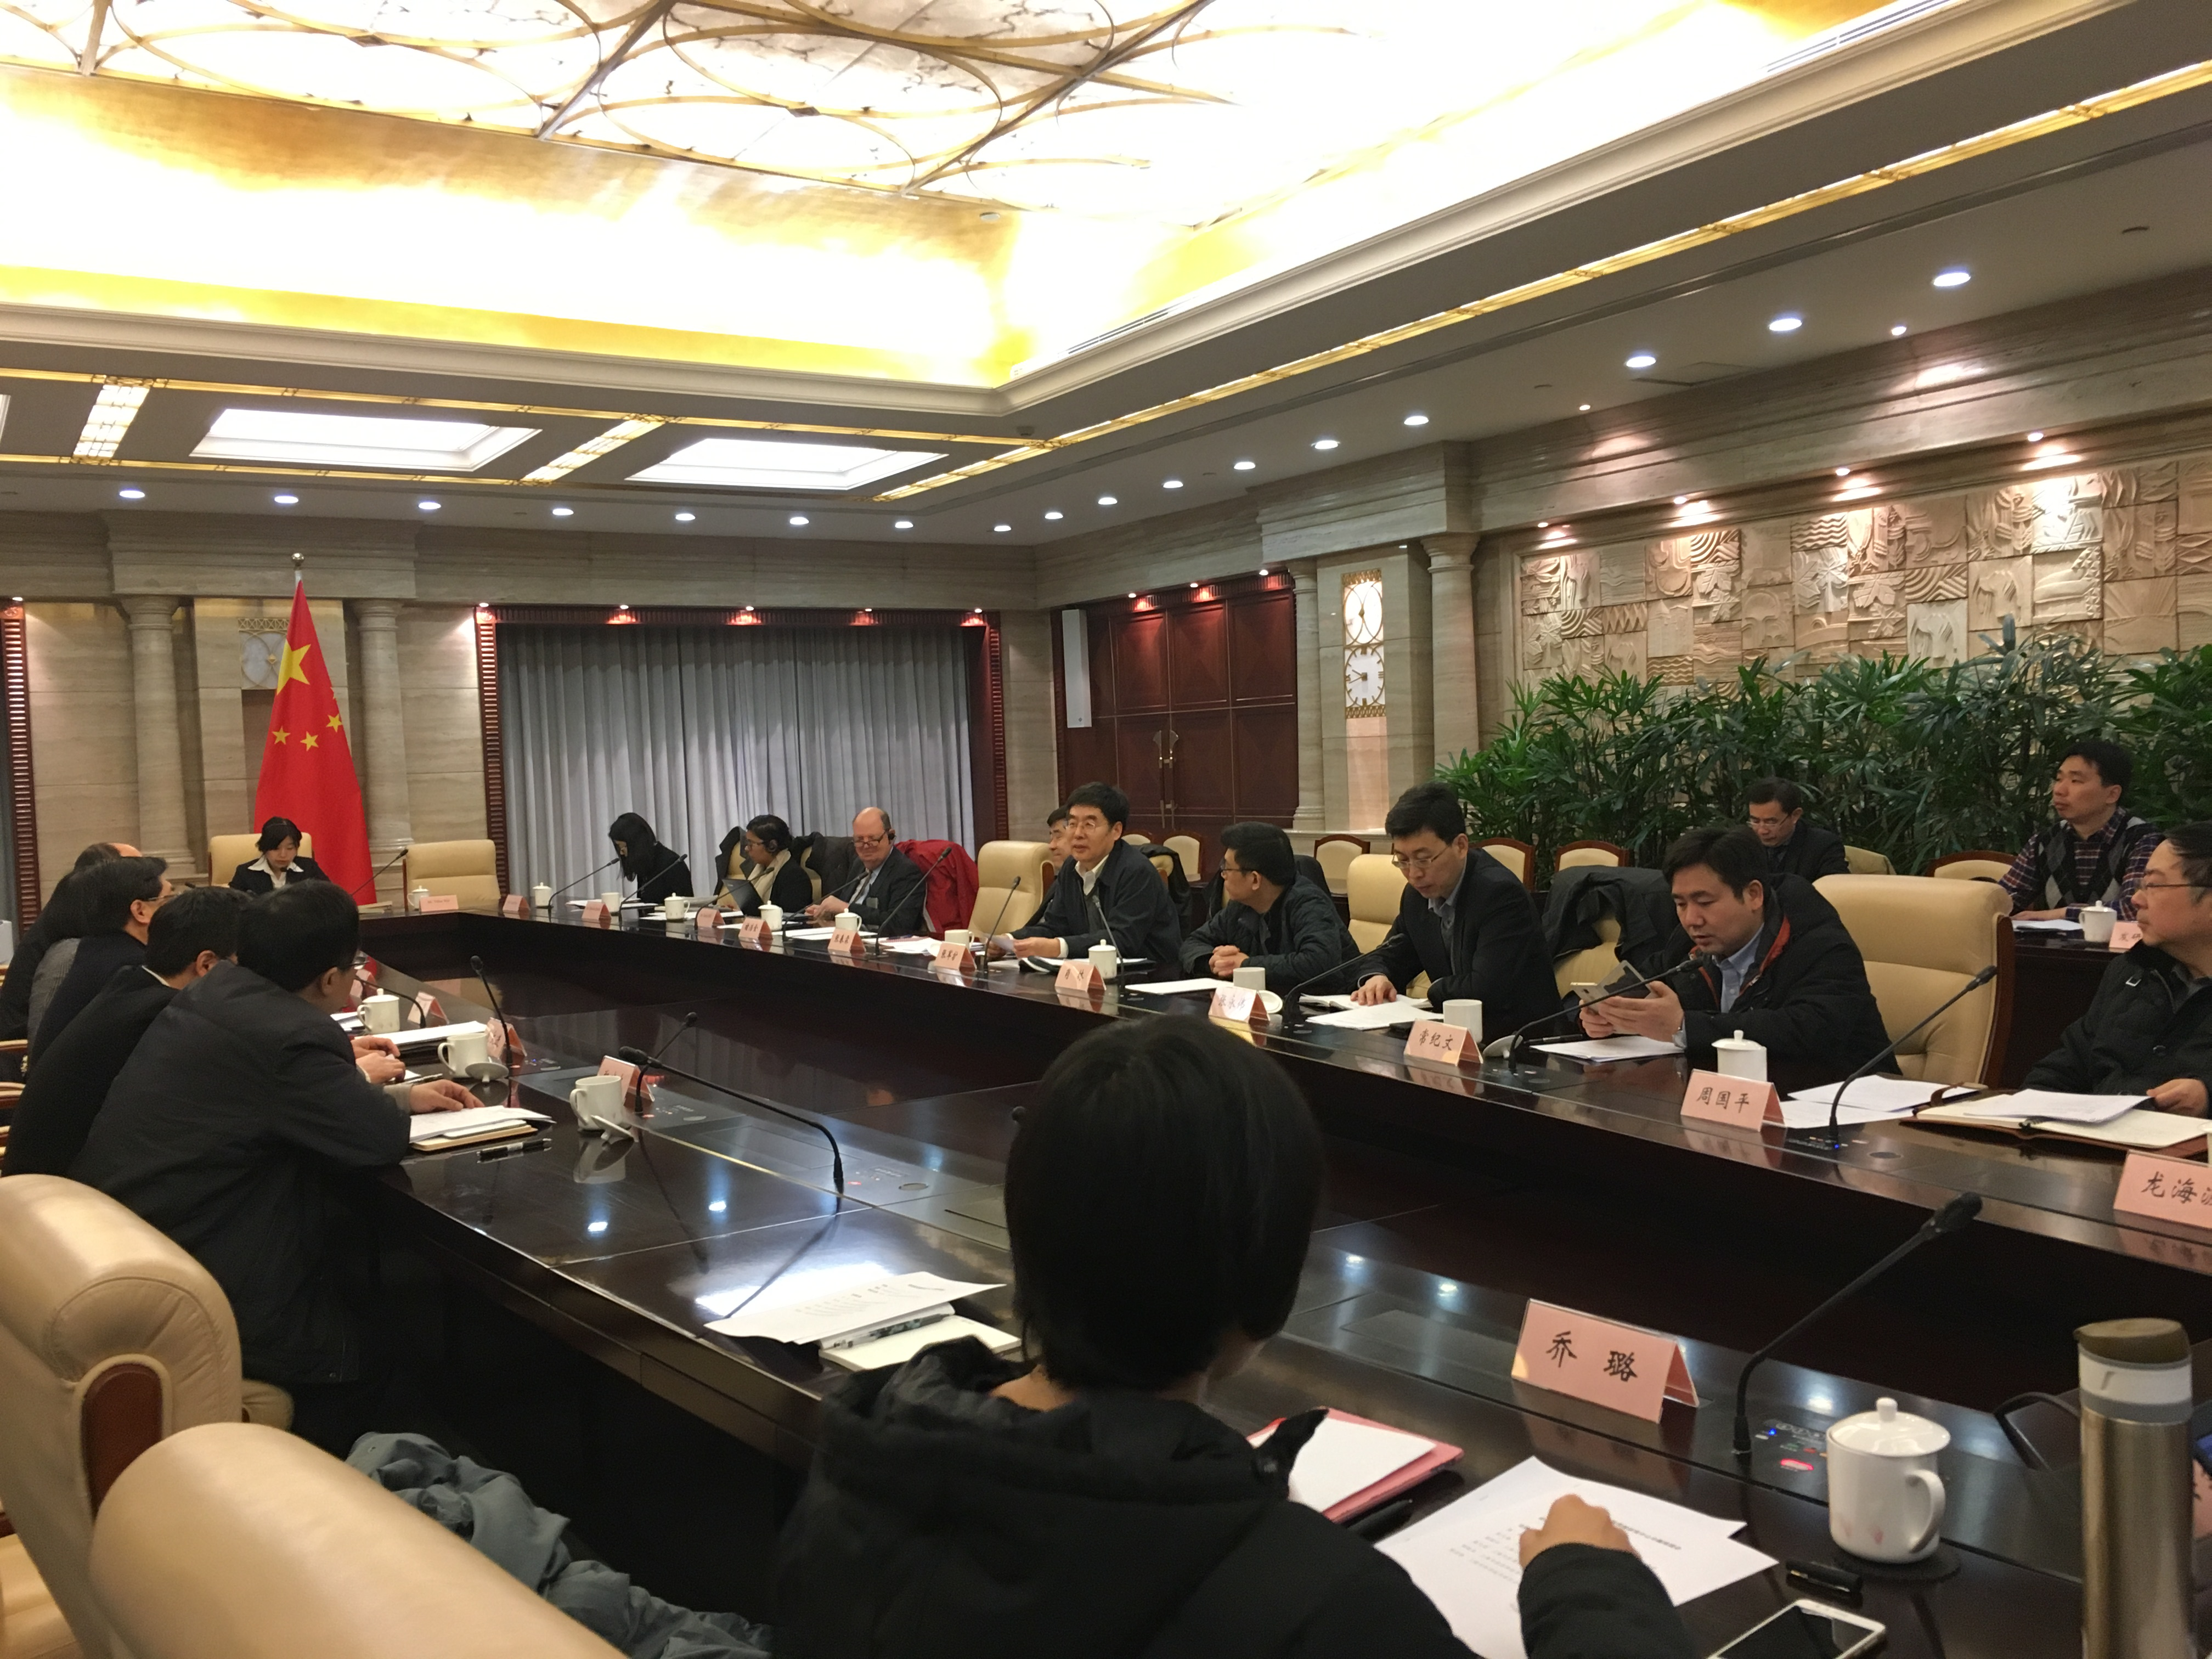 Zhang Junkuo leads survey group to Shanghai